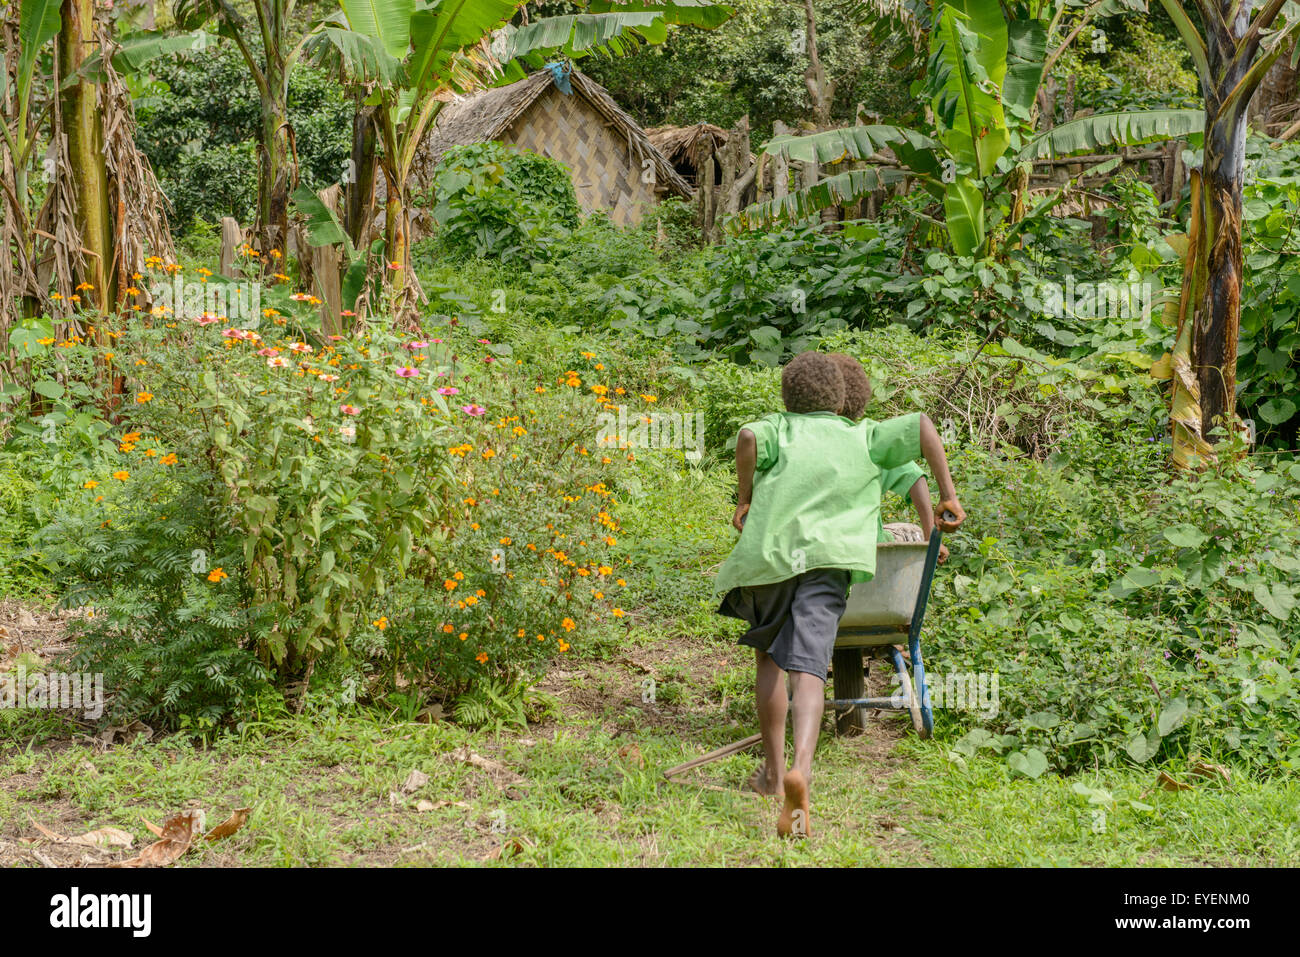 Children playing with wheelbarrow in school garden, Vanuatu - Stock Image